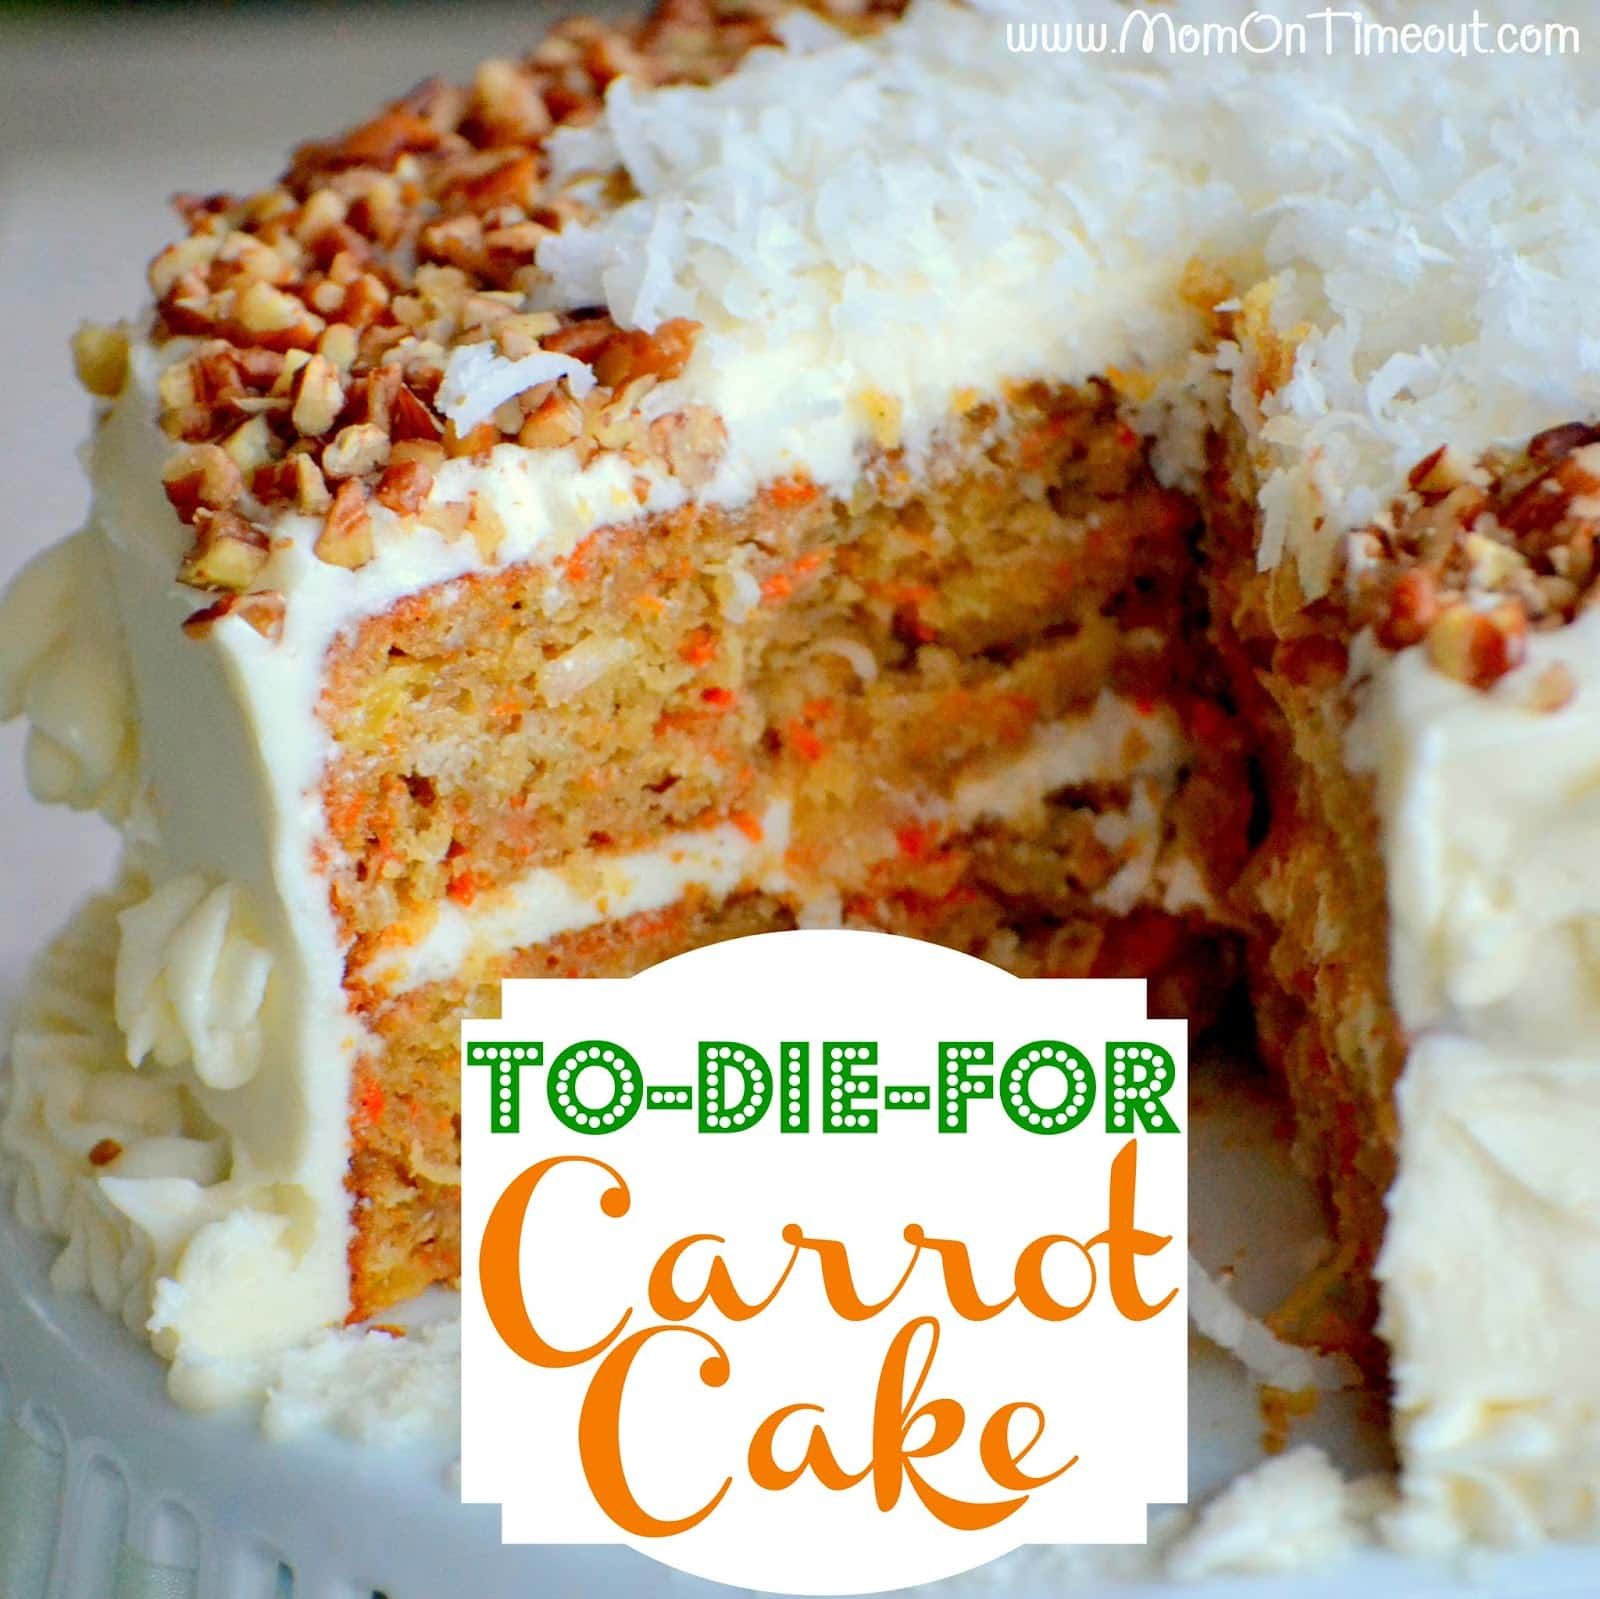 Carrot-Cake-With-Slice-Removed-Square-Labeled1